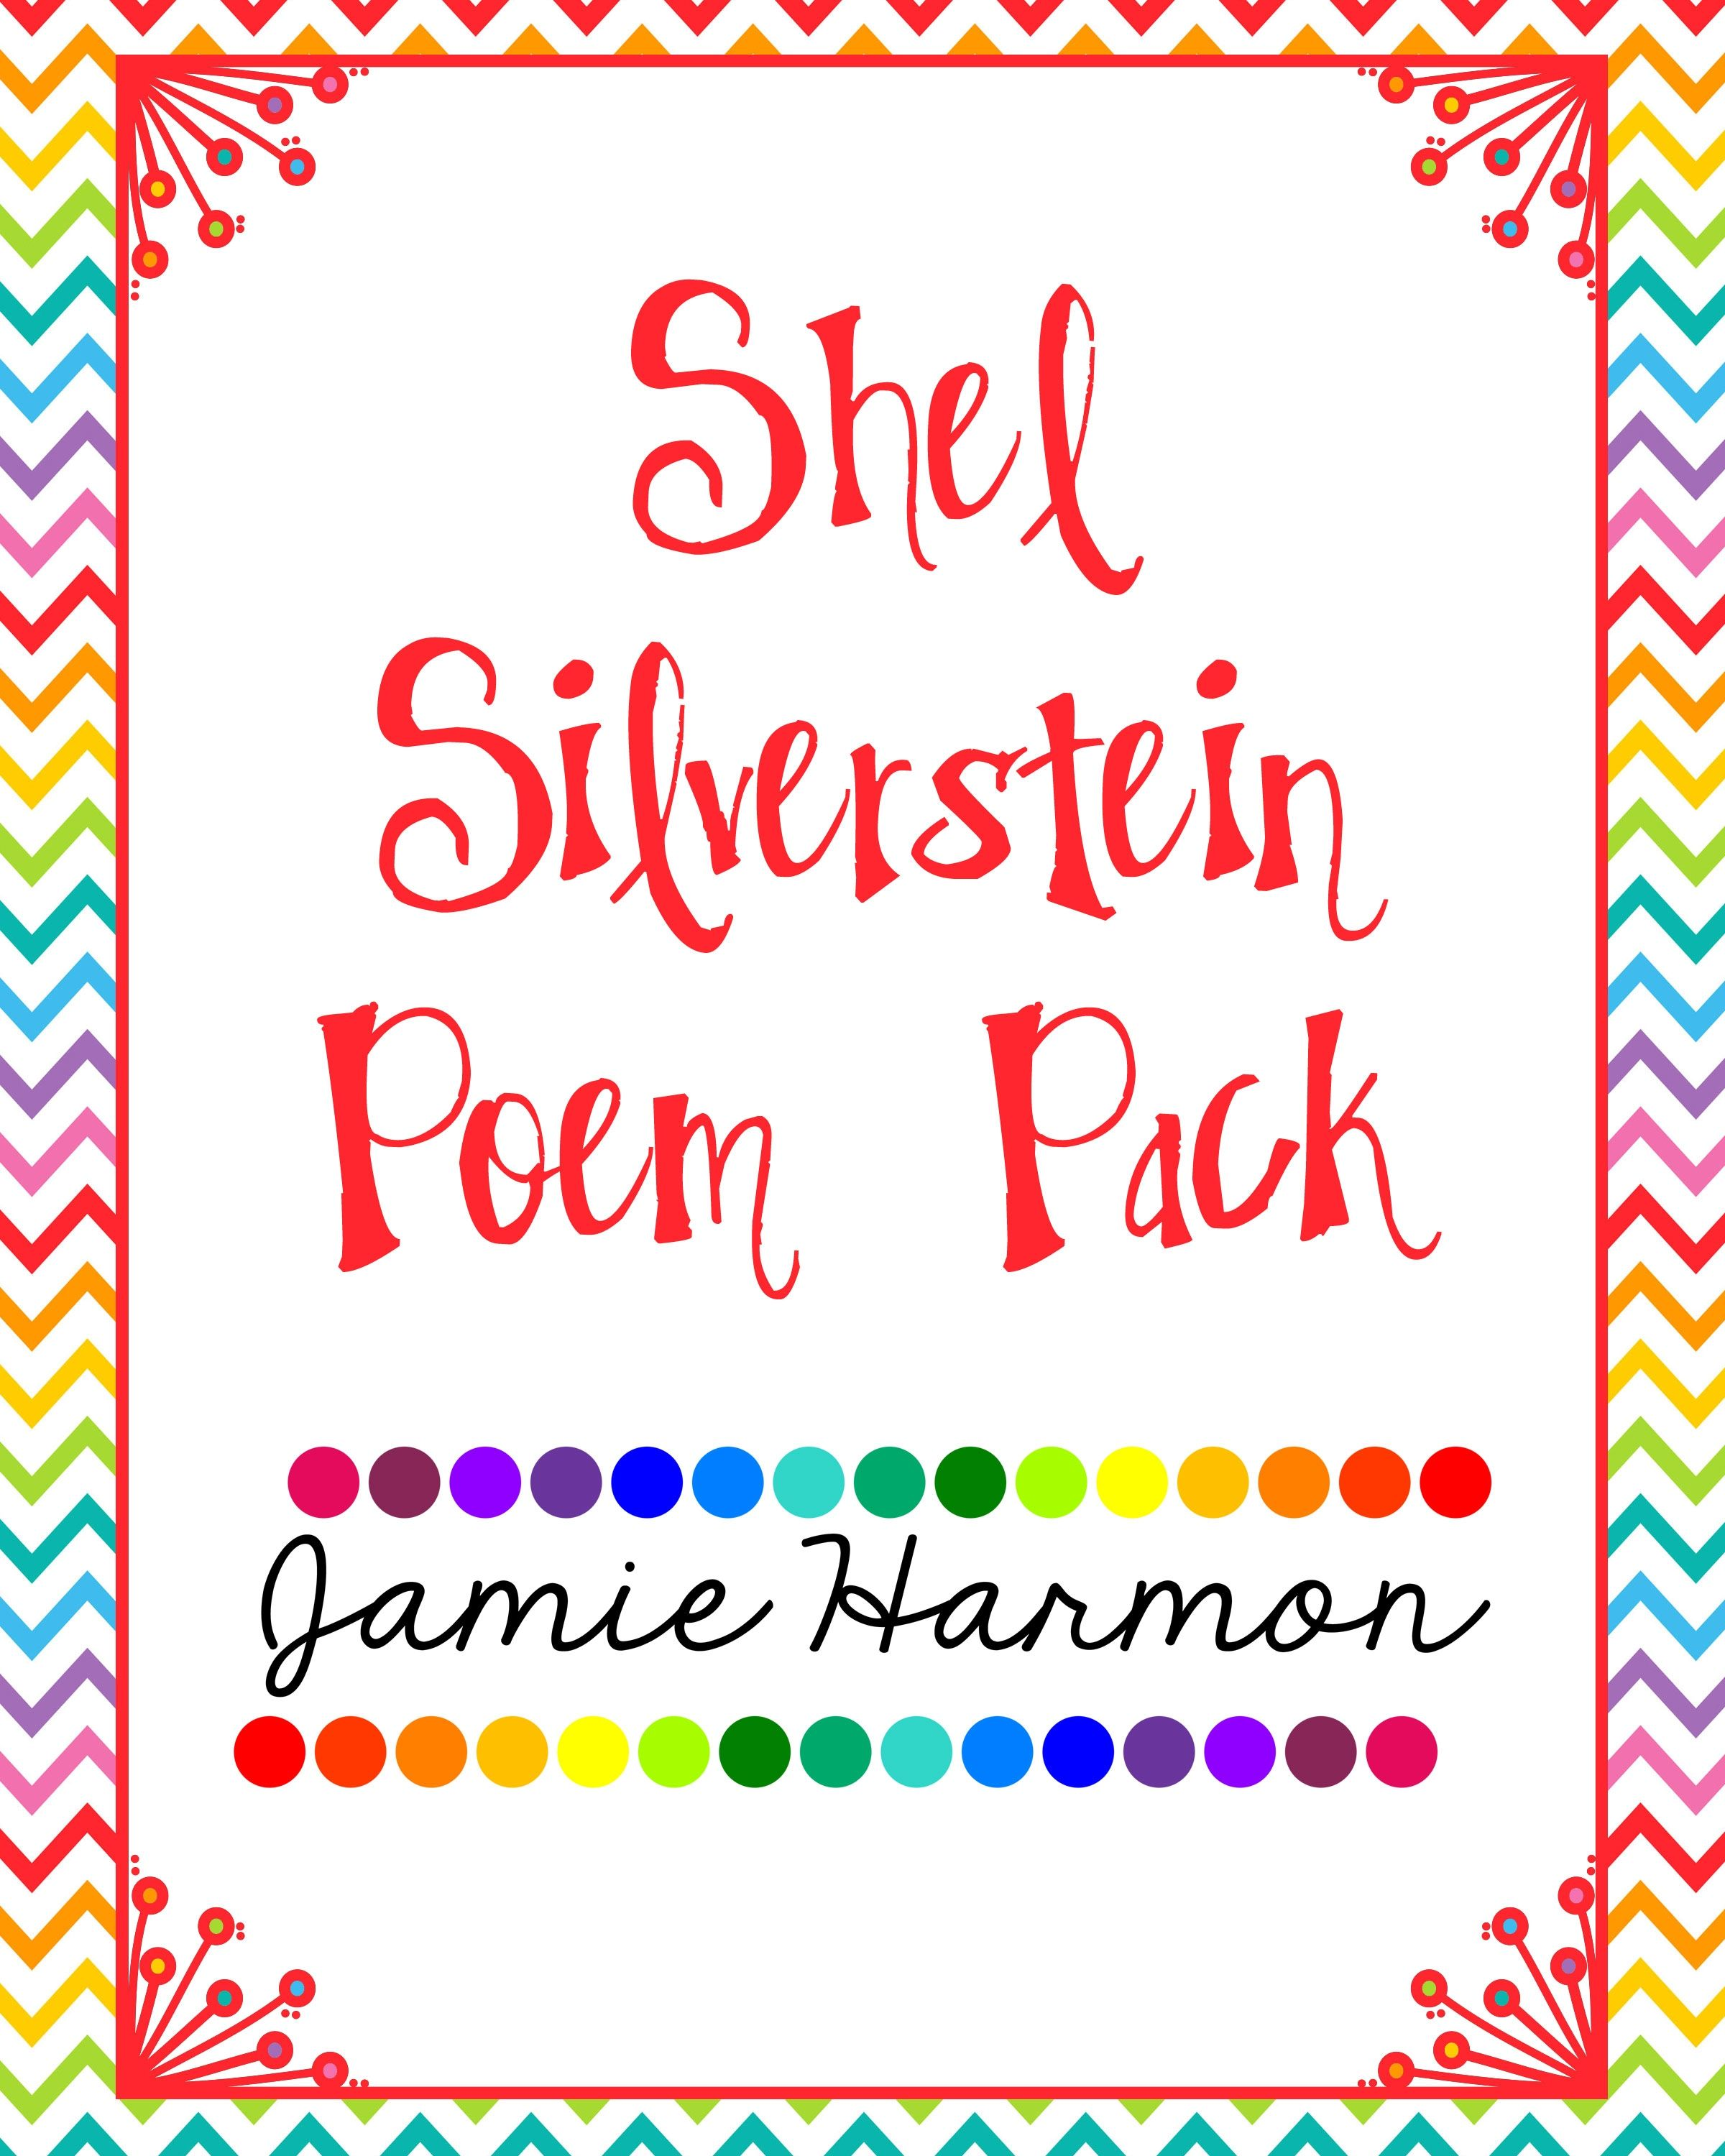 Included In This Set Is 6 Shel Silverstein Poems That You